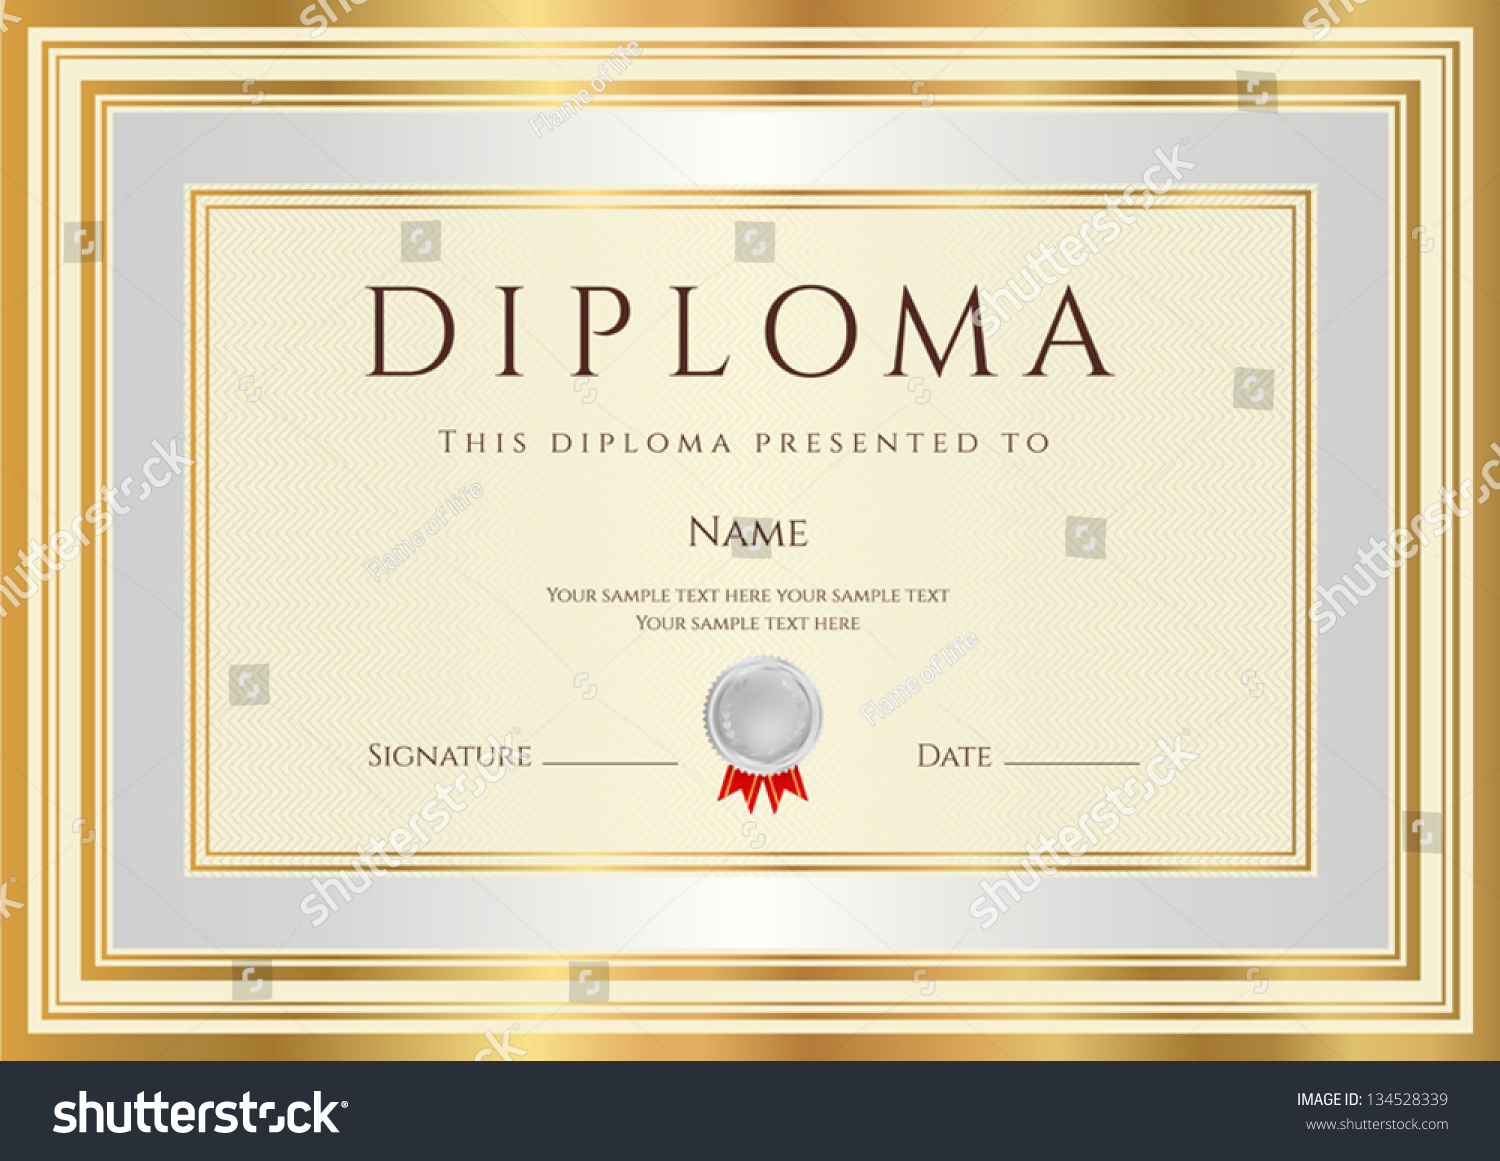 Diploma certificate template guilloche pattern silver stock vector diploma certificate template with guilloche pattern silver and gold border background design usable yelopaper Choice Image